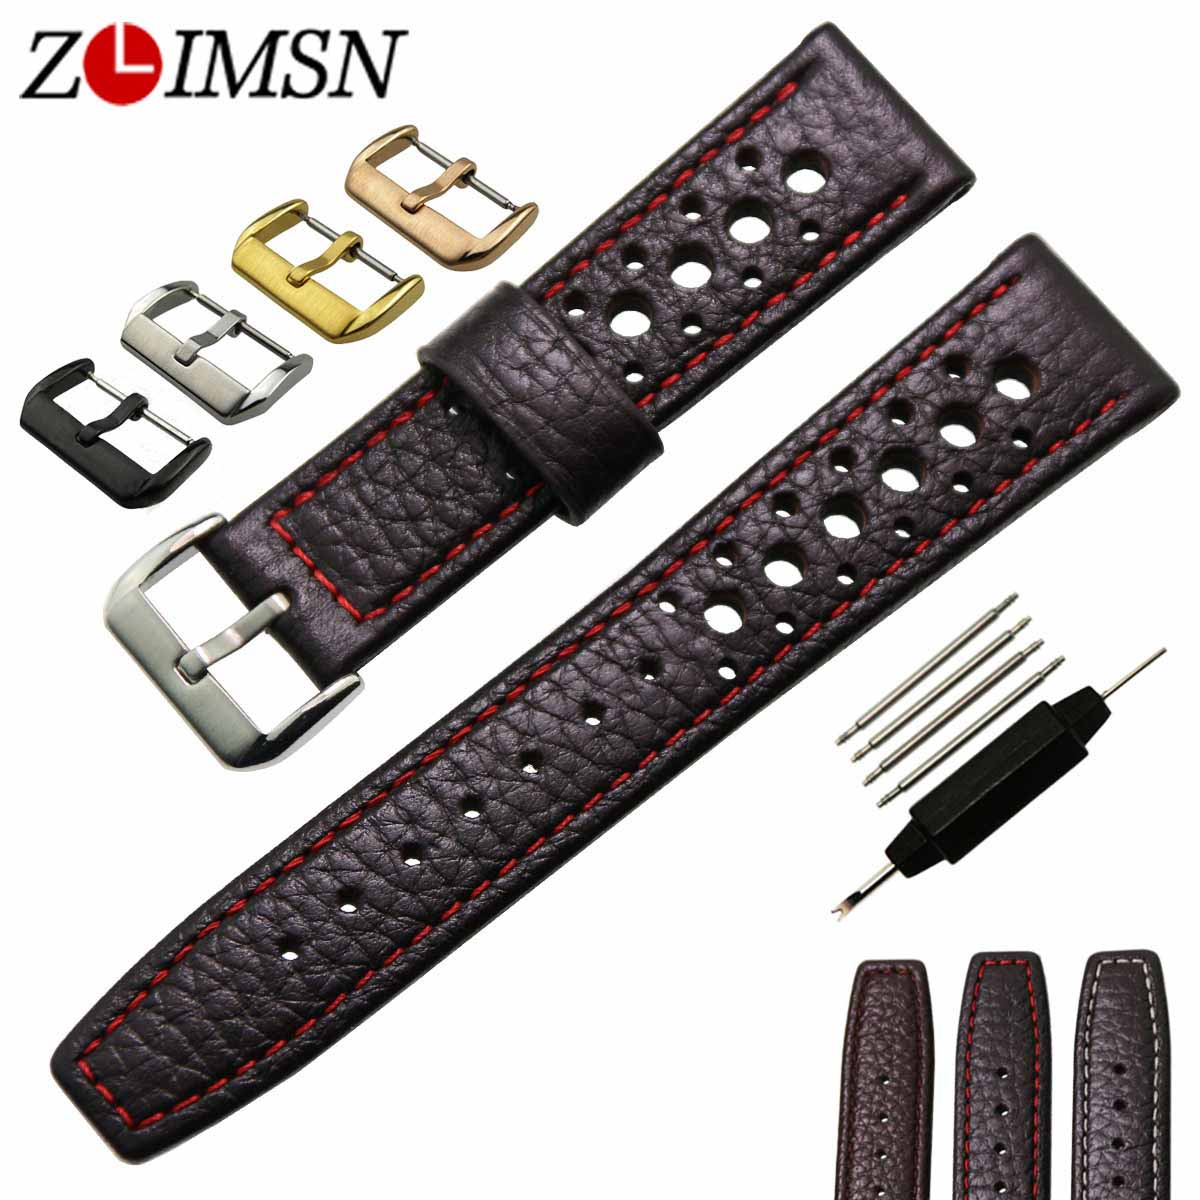 ZLIMSN Mens Genuine Leather Watchbands Watch Band Bands Dark Brown Strap Brand Belt Stainless Steel Buckle 20mm 22mm 2018 new retro print two piece tankini swimsuit shorts plus size women swimwear sports push up bathing suit big size retro l 5xl